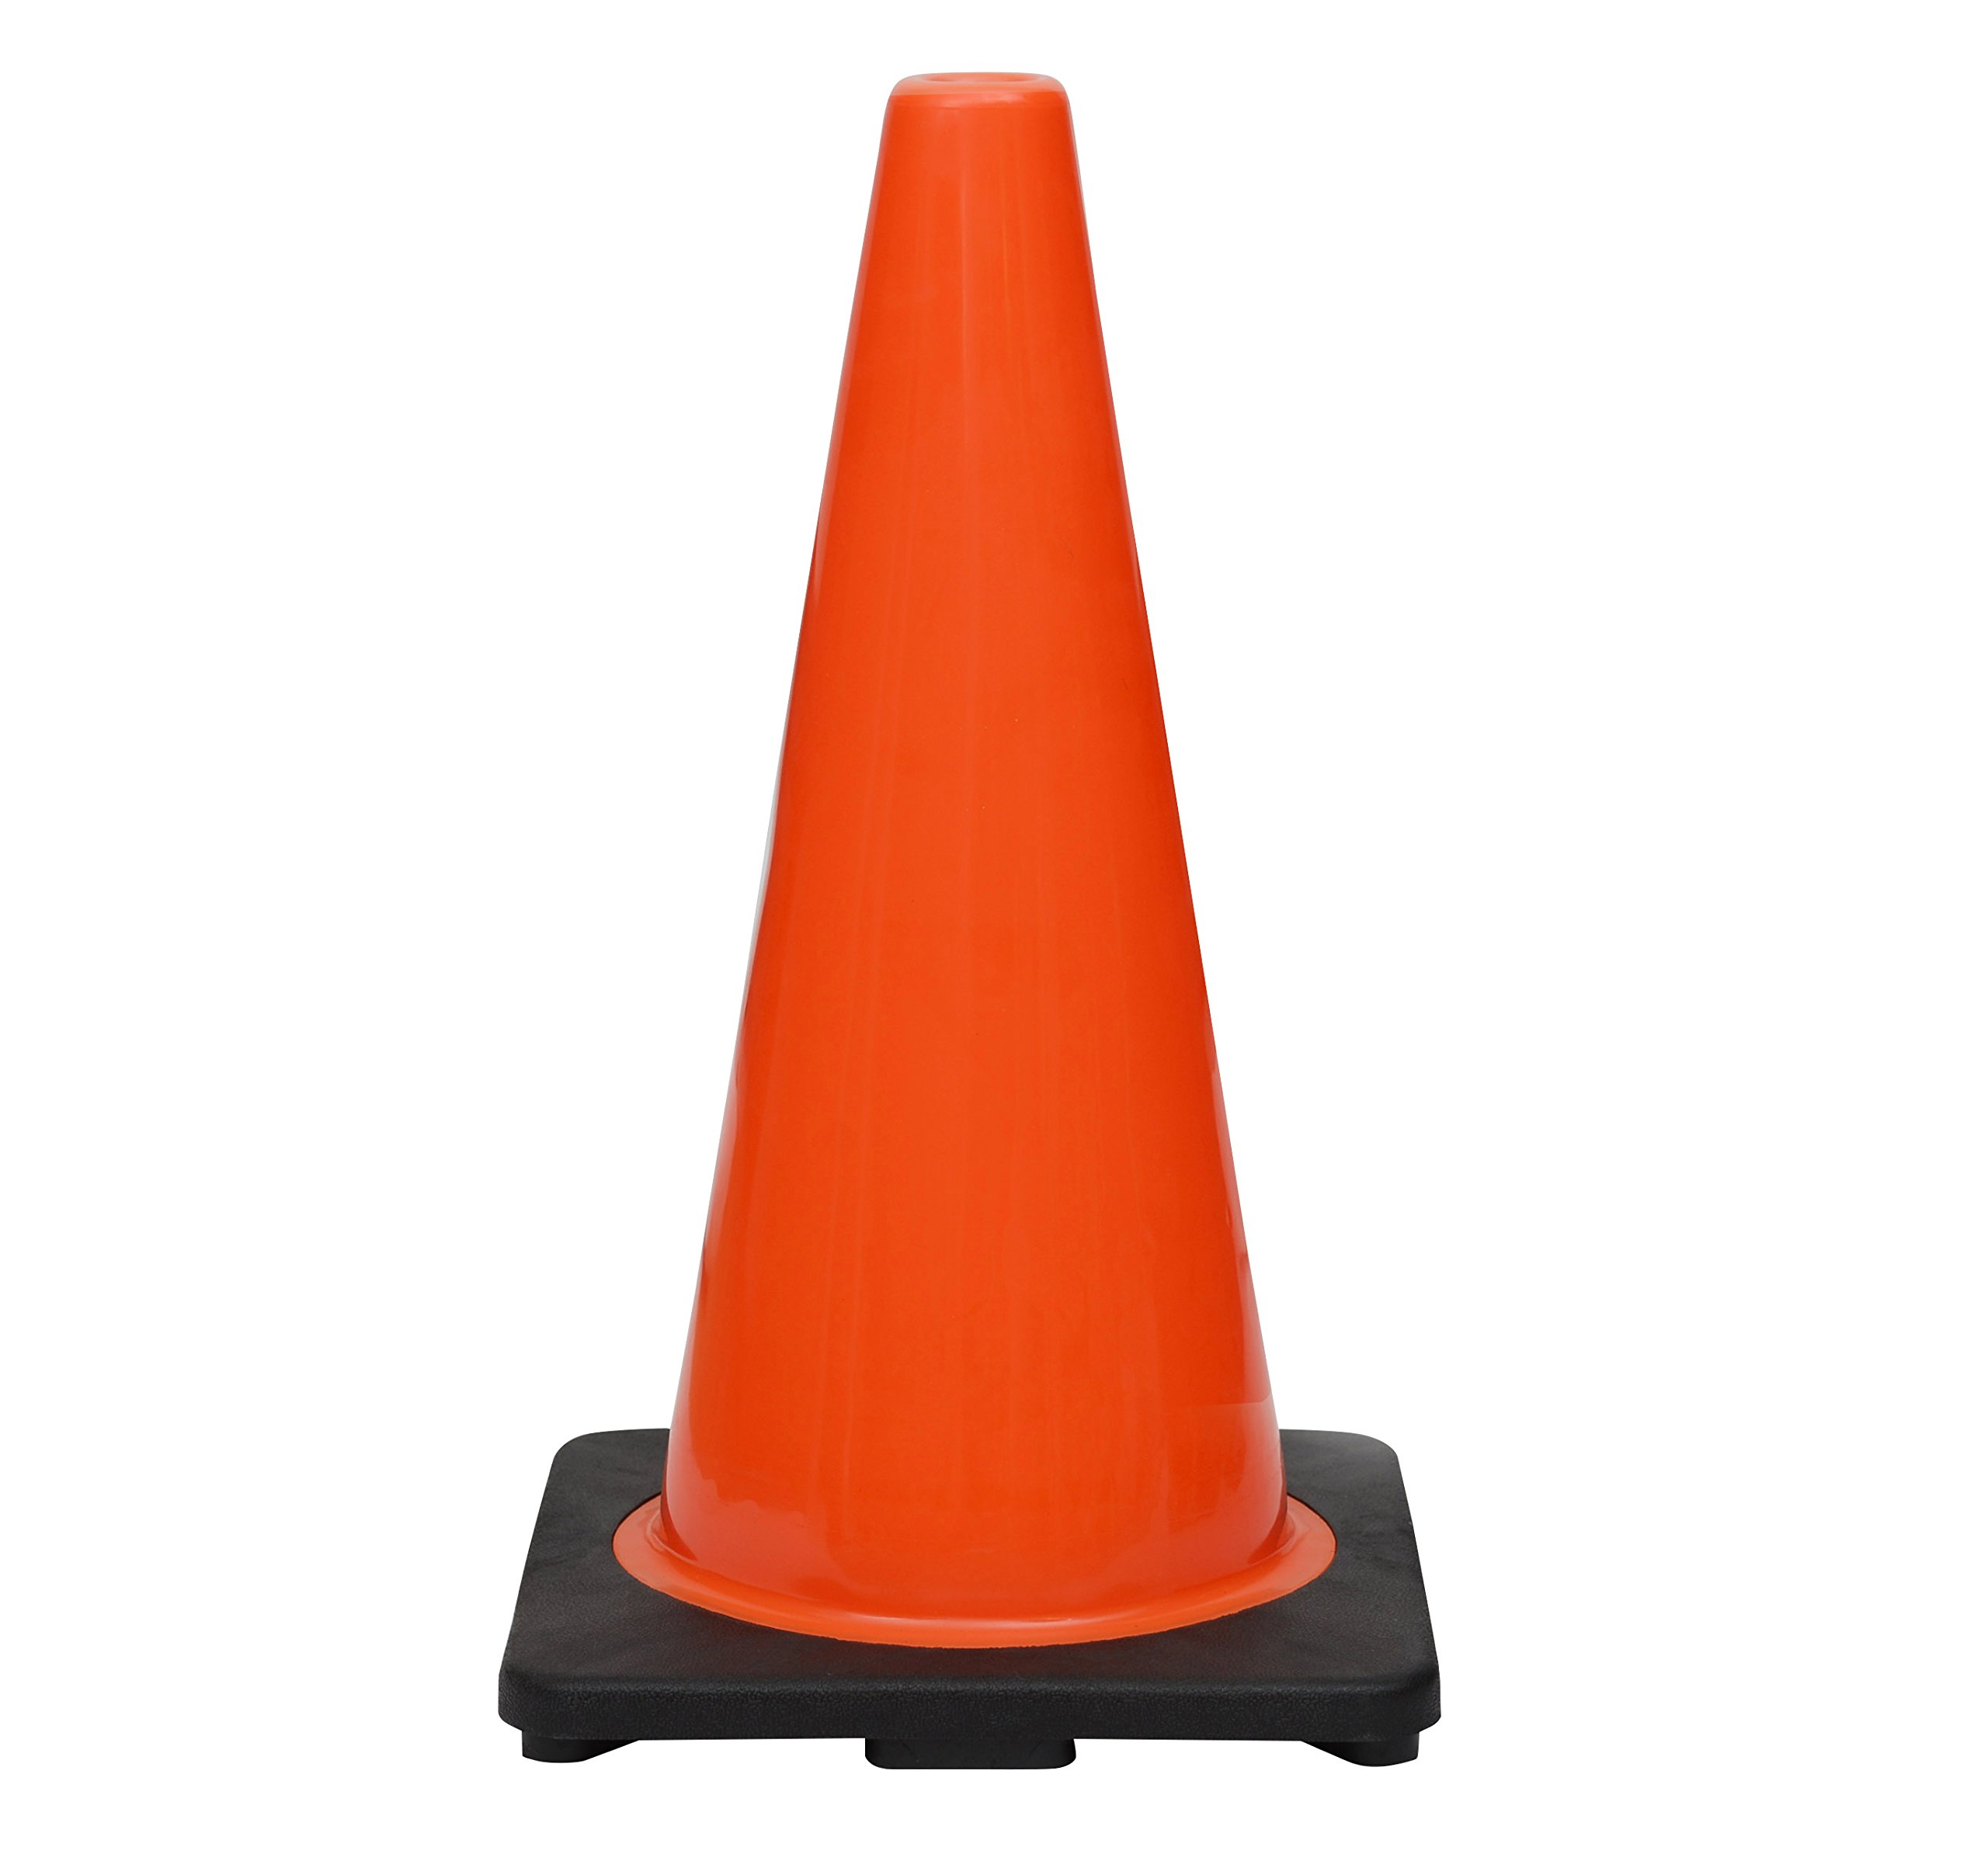 (6 Cones) CJ Safety 18'' Height PVC Traffic Safety Cones With Black Base - No Reflective Collars (Set of 6) by CJ Safety